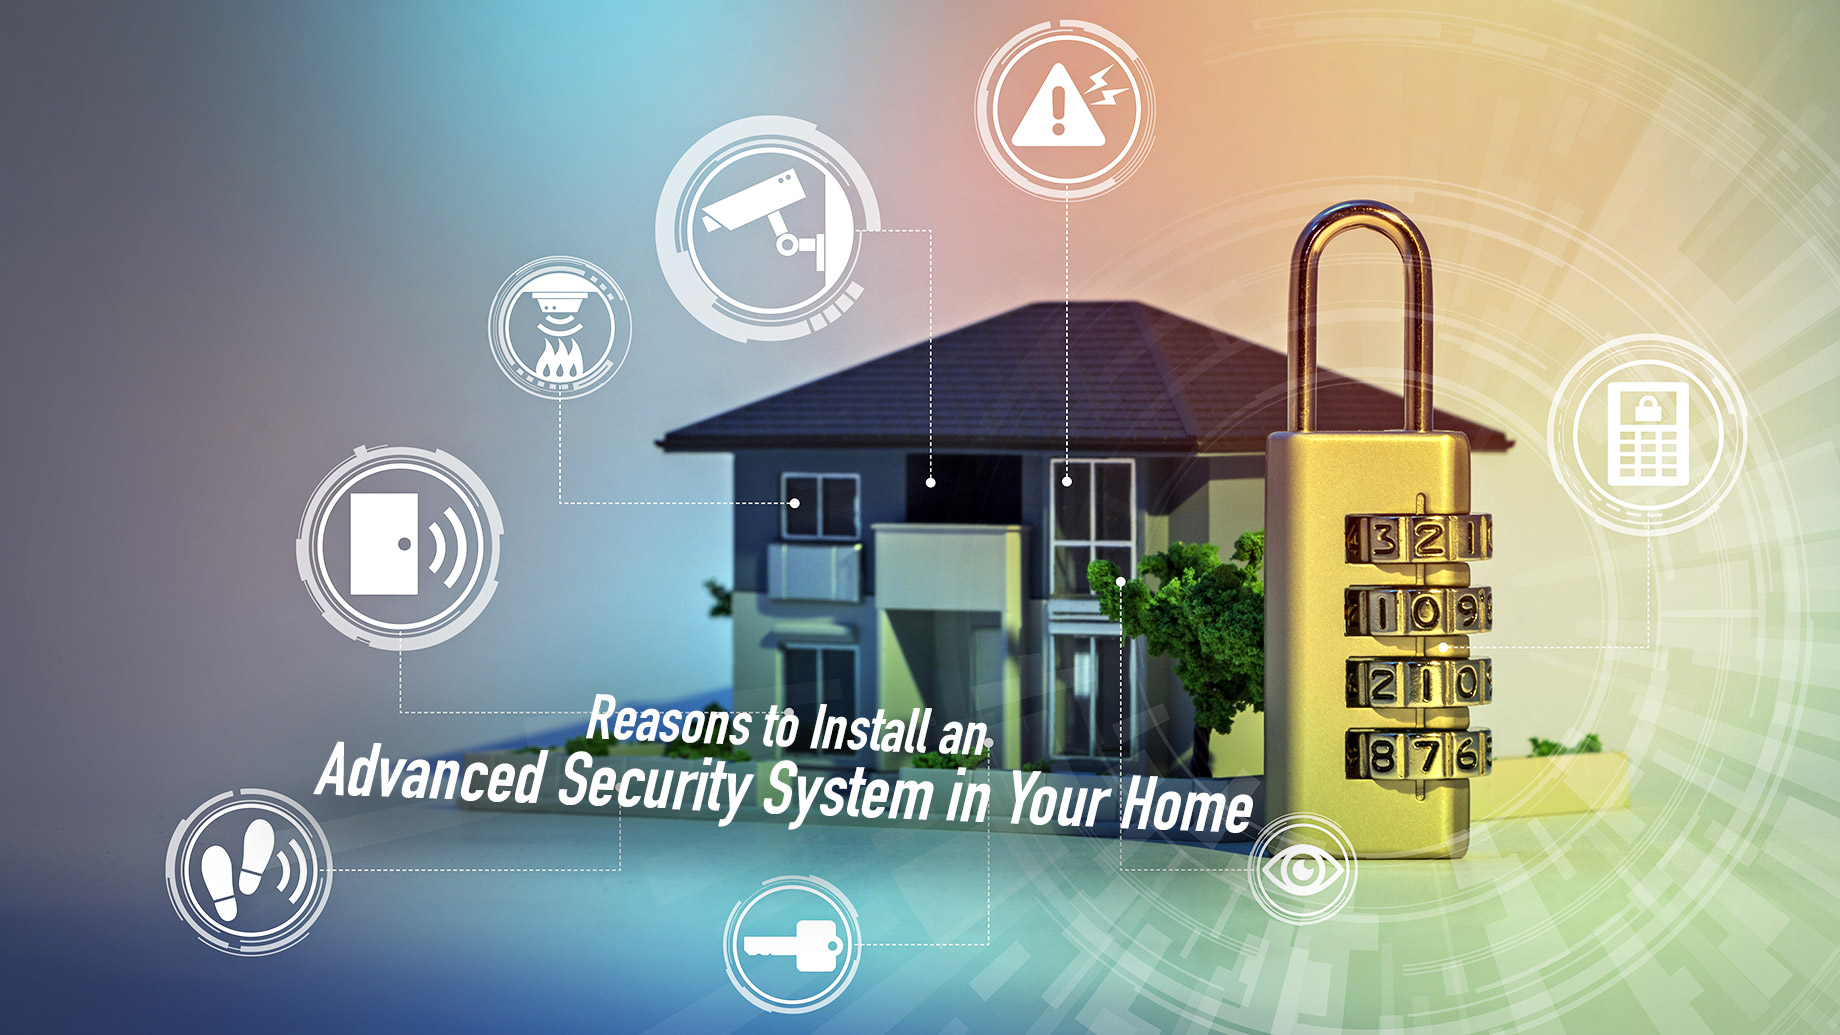 Reasons to Install an Advanced Security System in Your Home